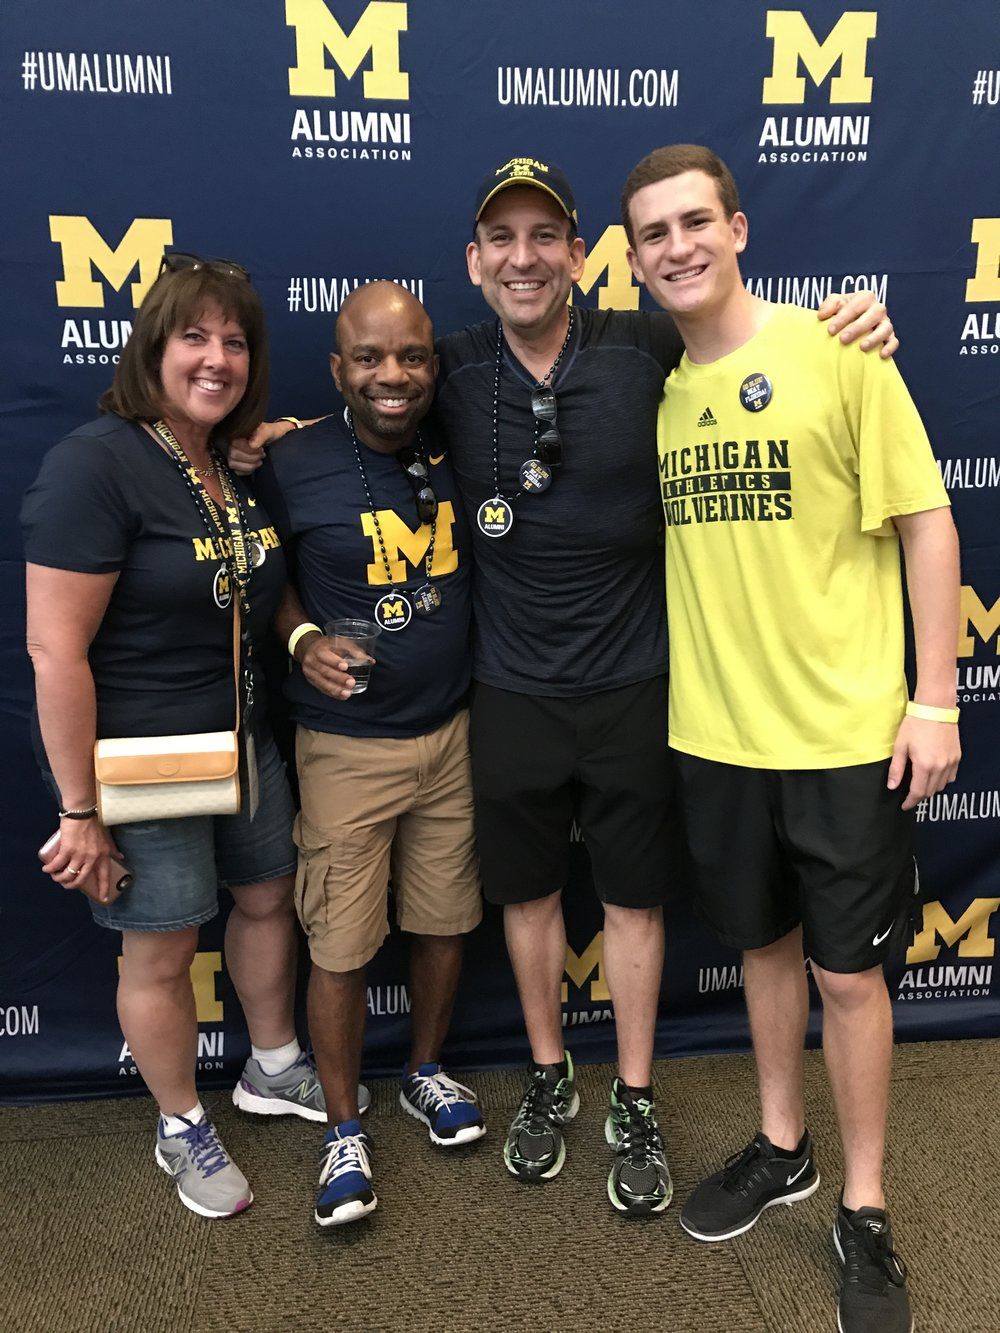 Go Blue! Awesome time with new friends! This is the start of a survivor network that will span the globe.